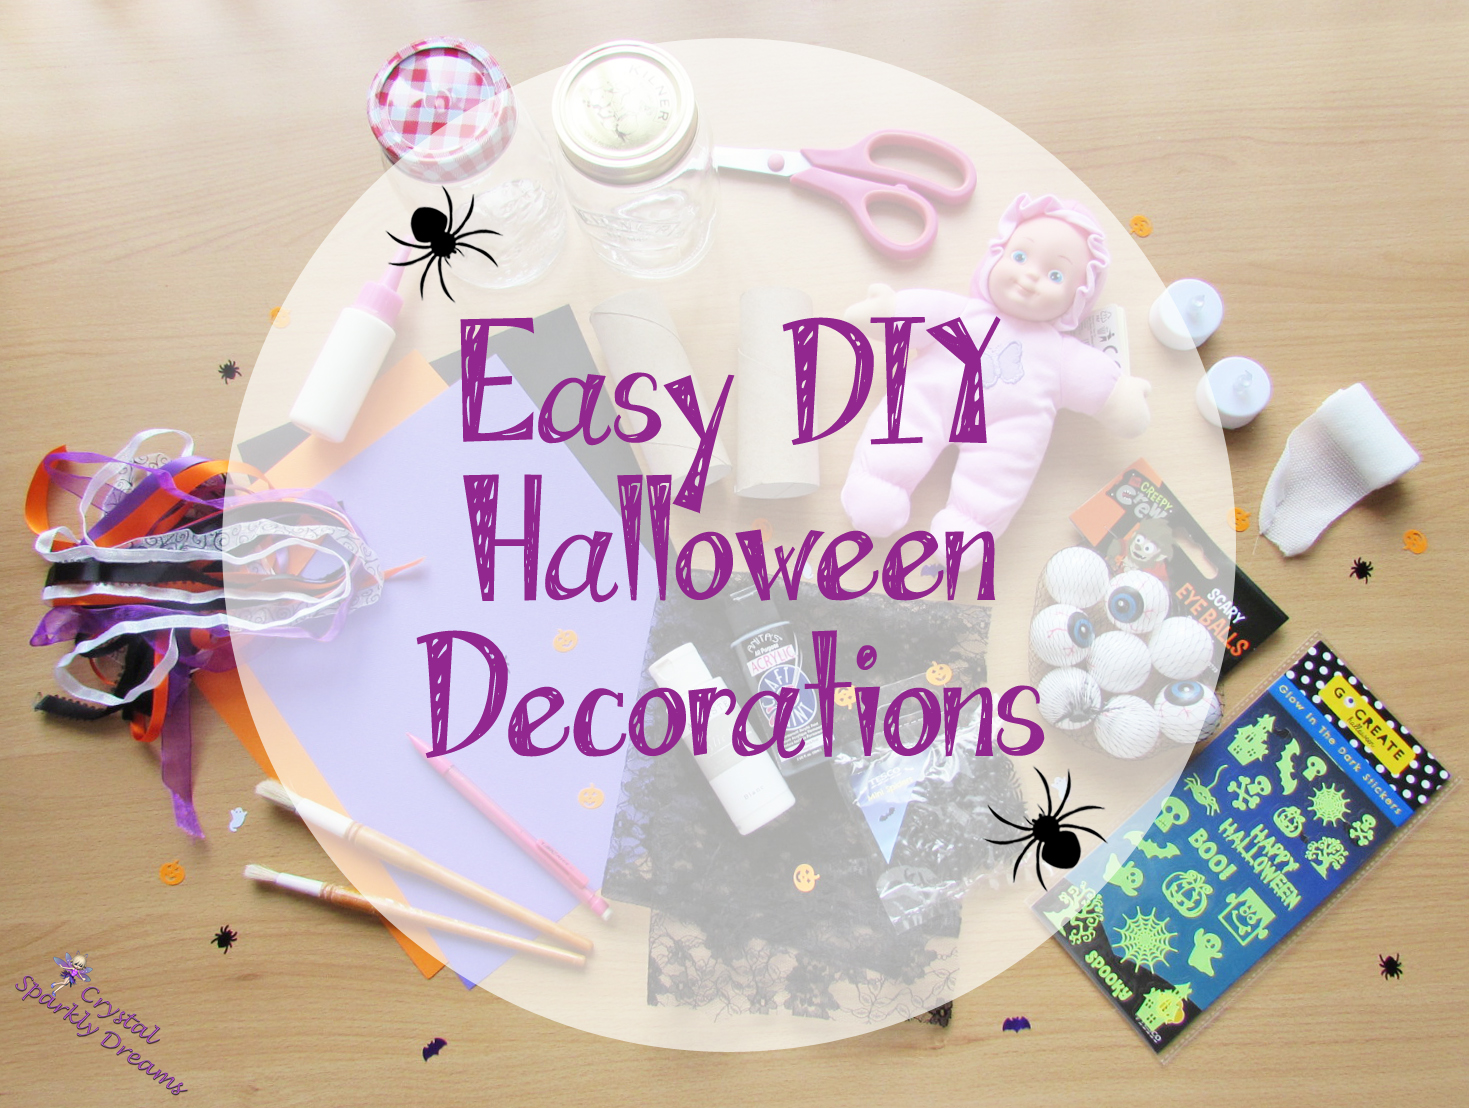 Crystal Sparkly Dreams Easy Diy Halloween Decorations